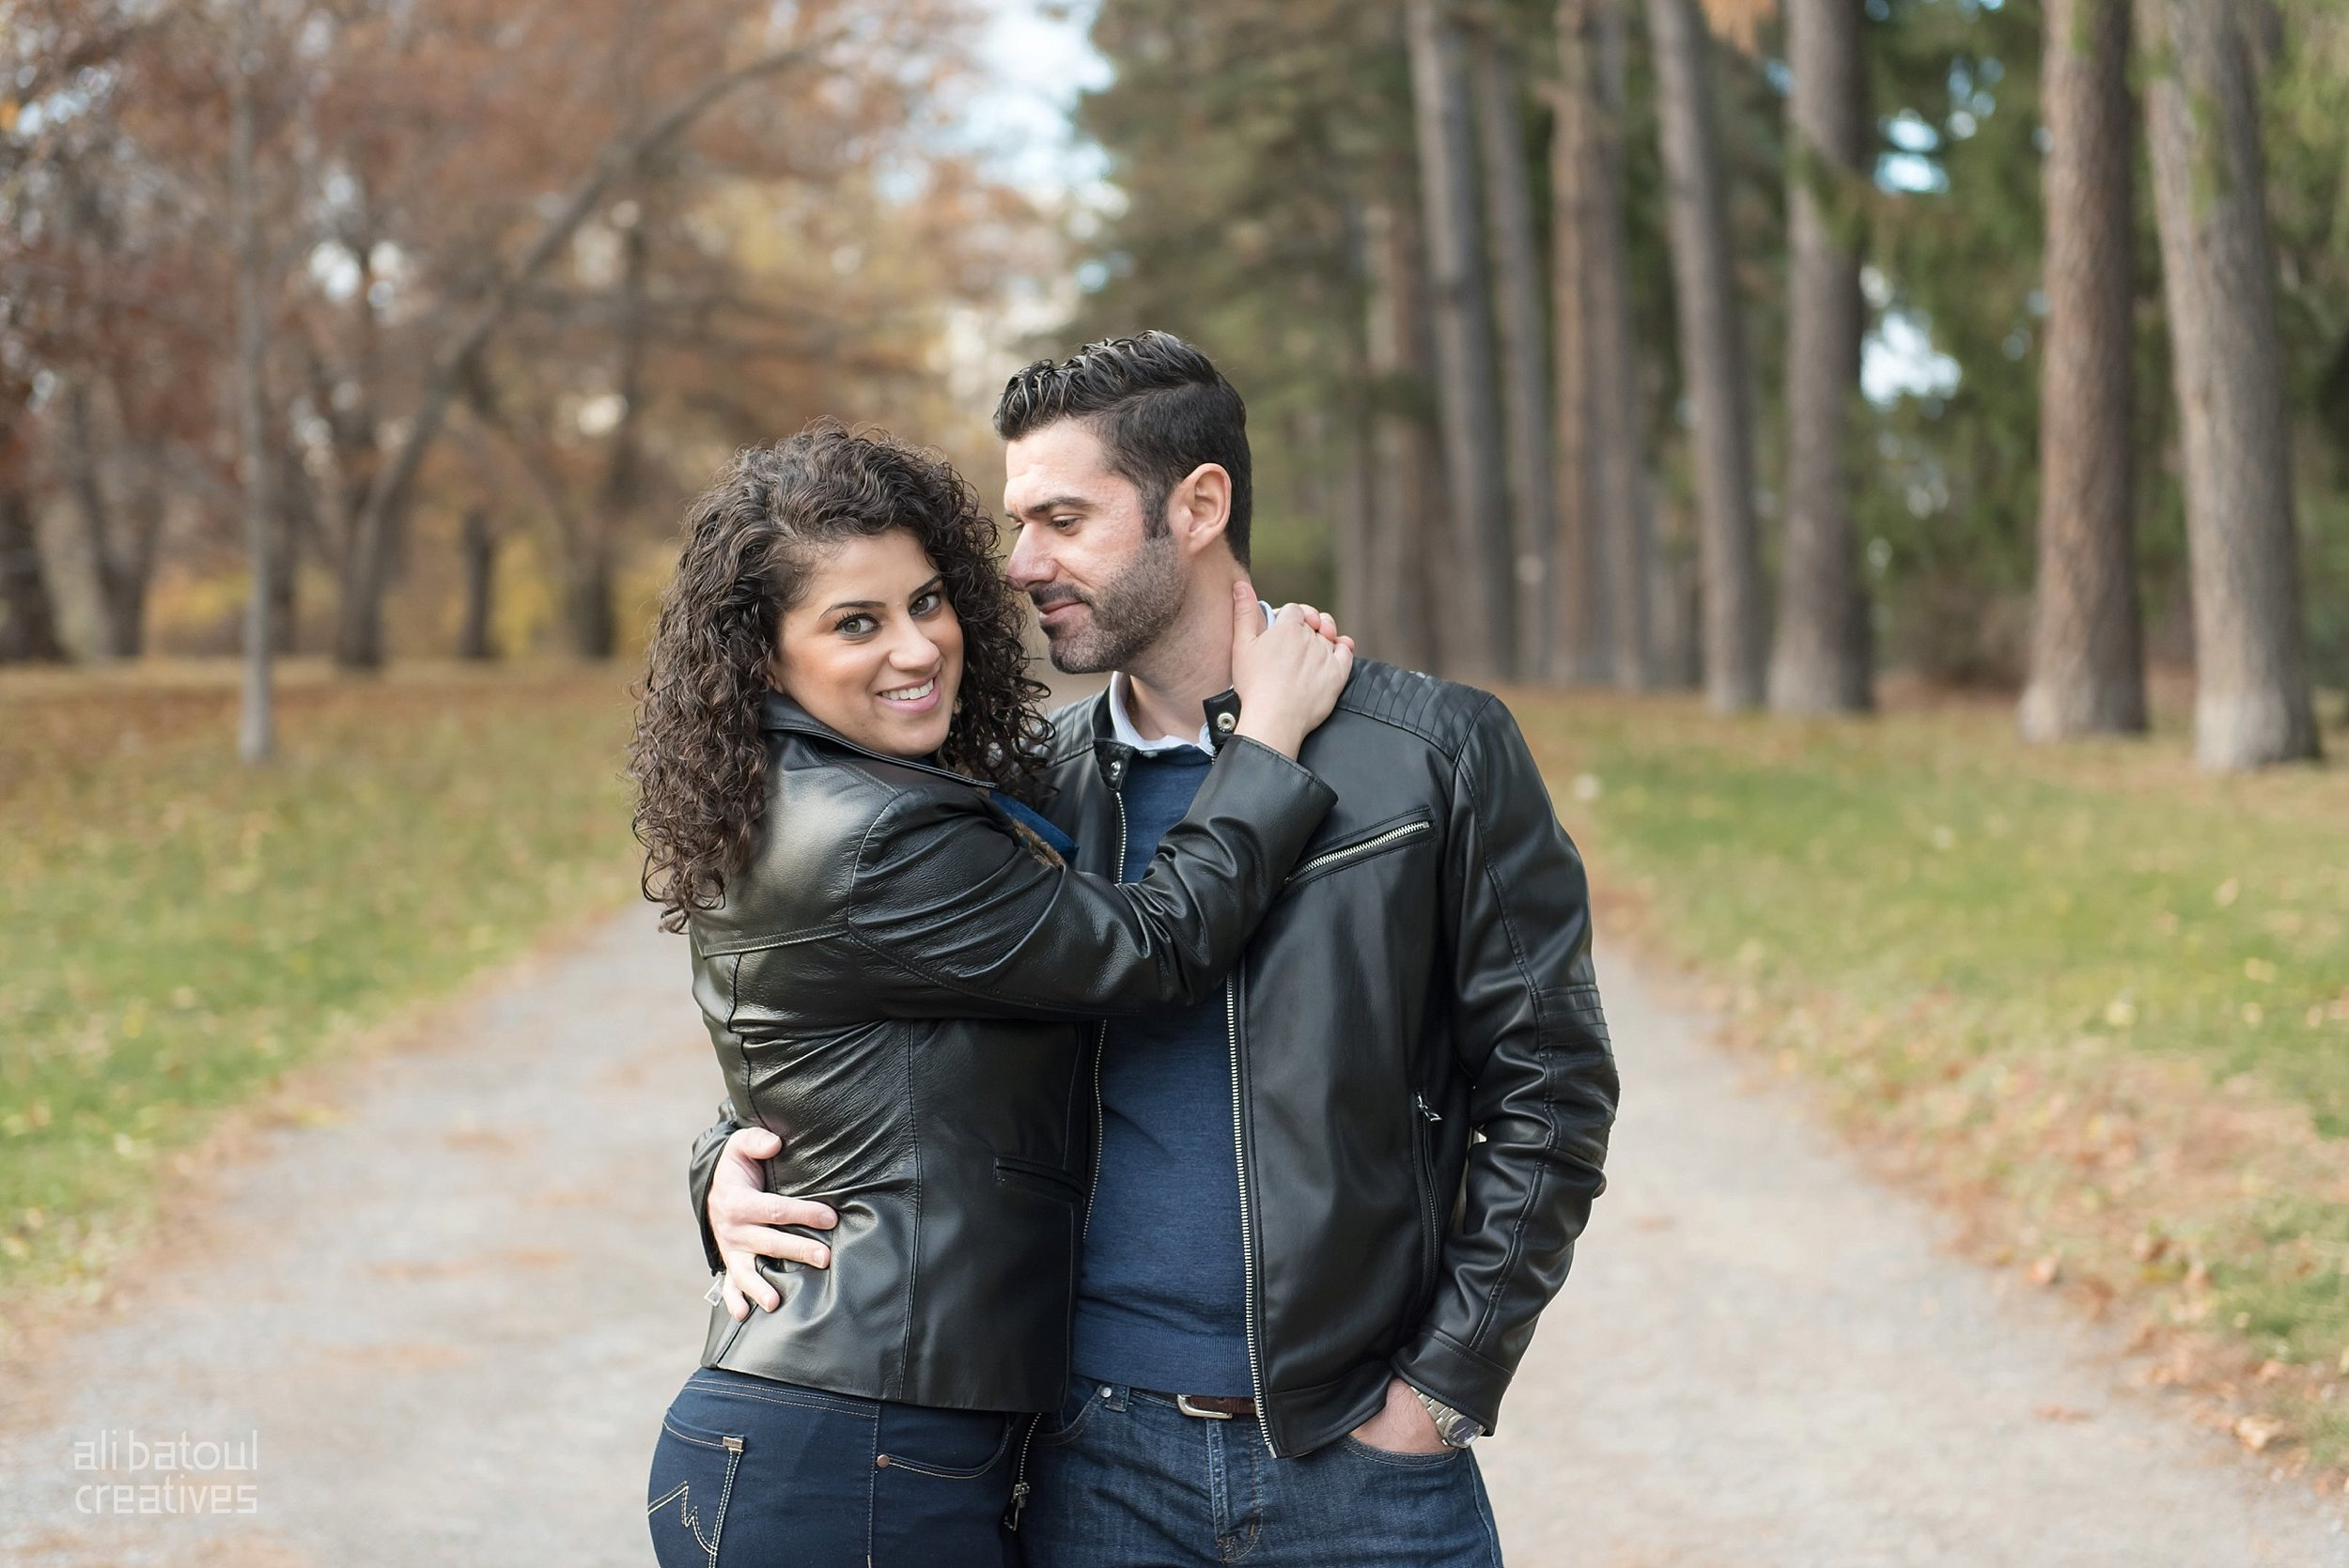 Isabelle + Arman Couples Shoot - Ali Batoul Creatives - Blog-21_Stomped.jpg